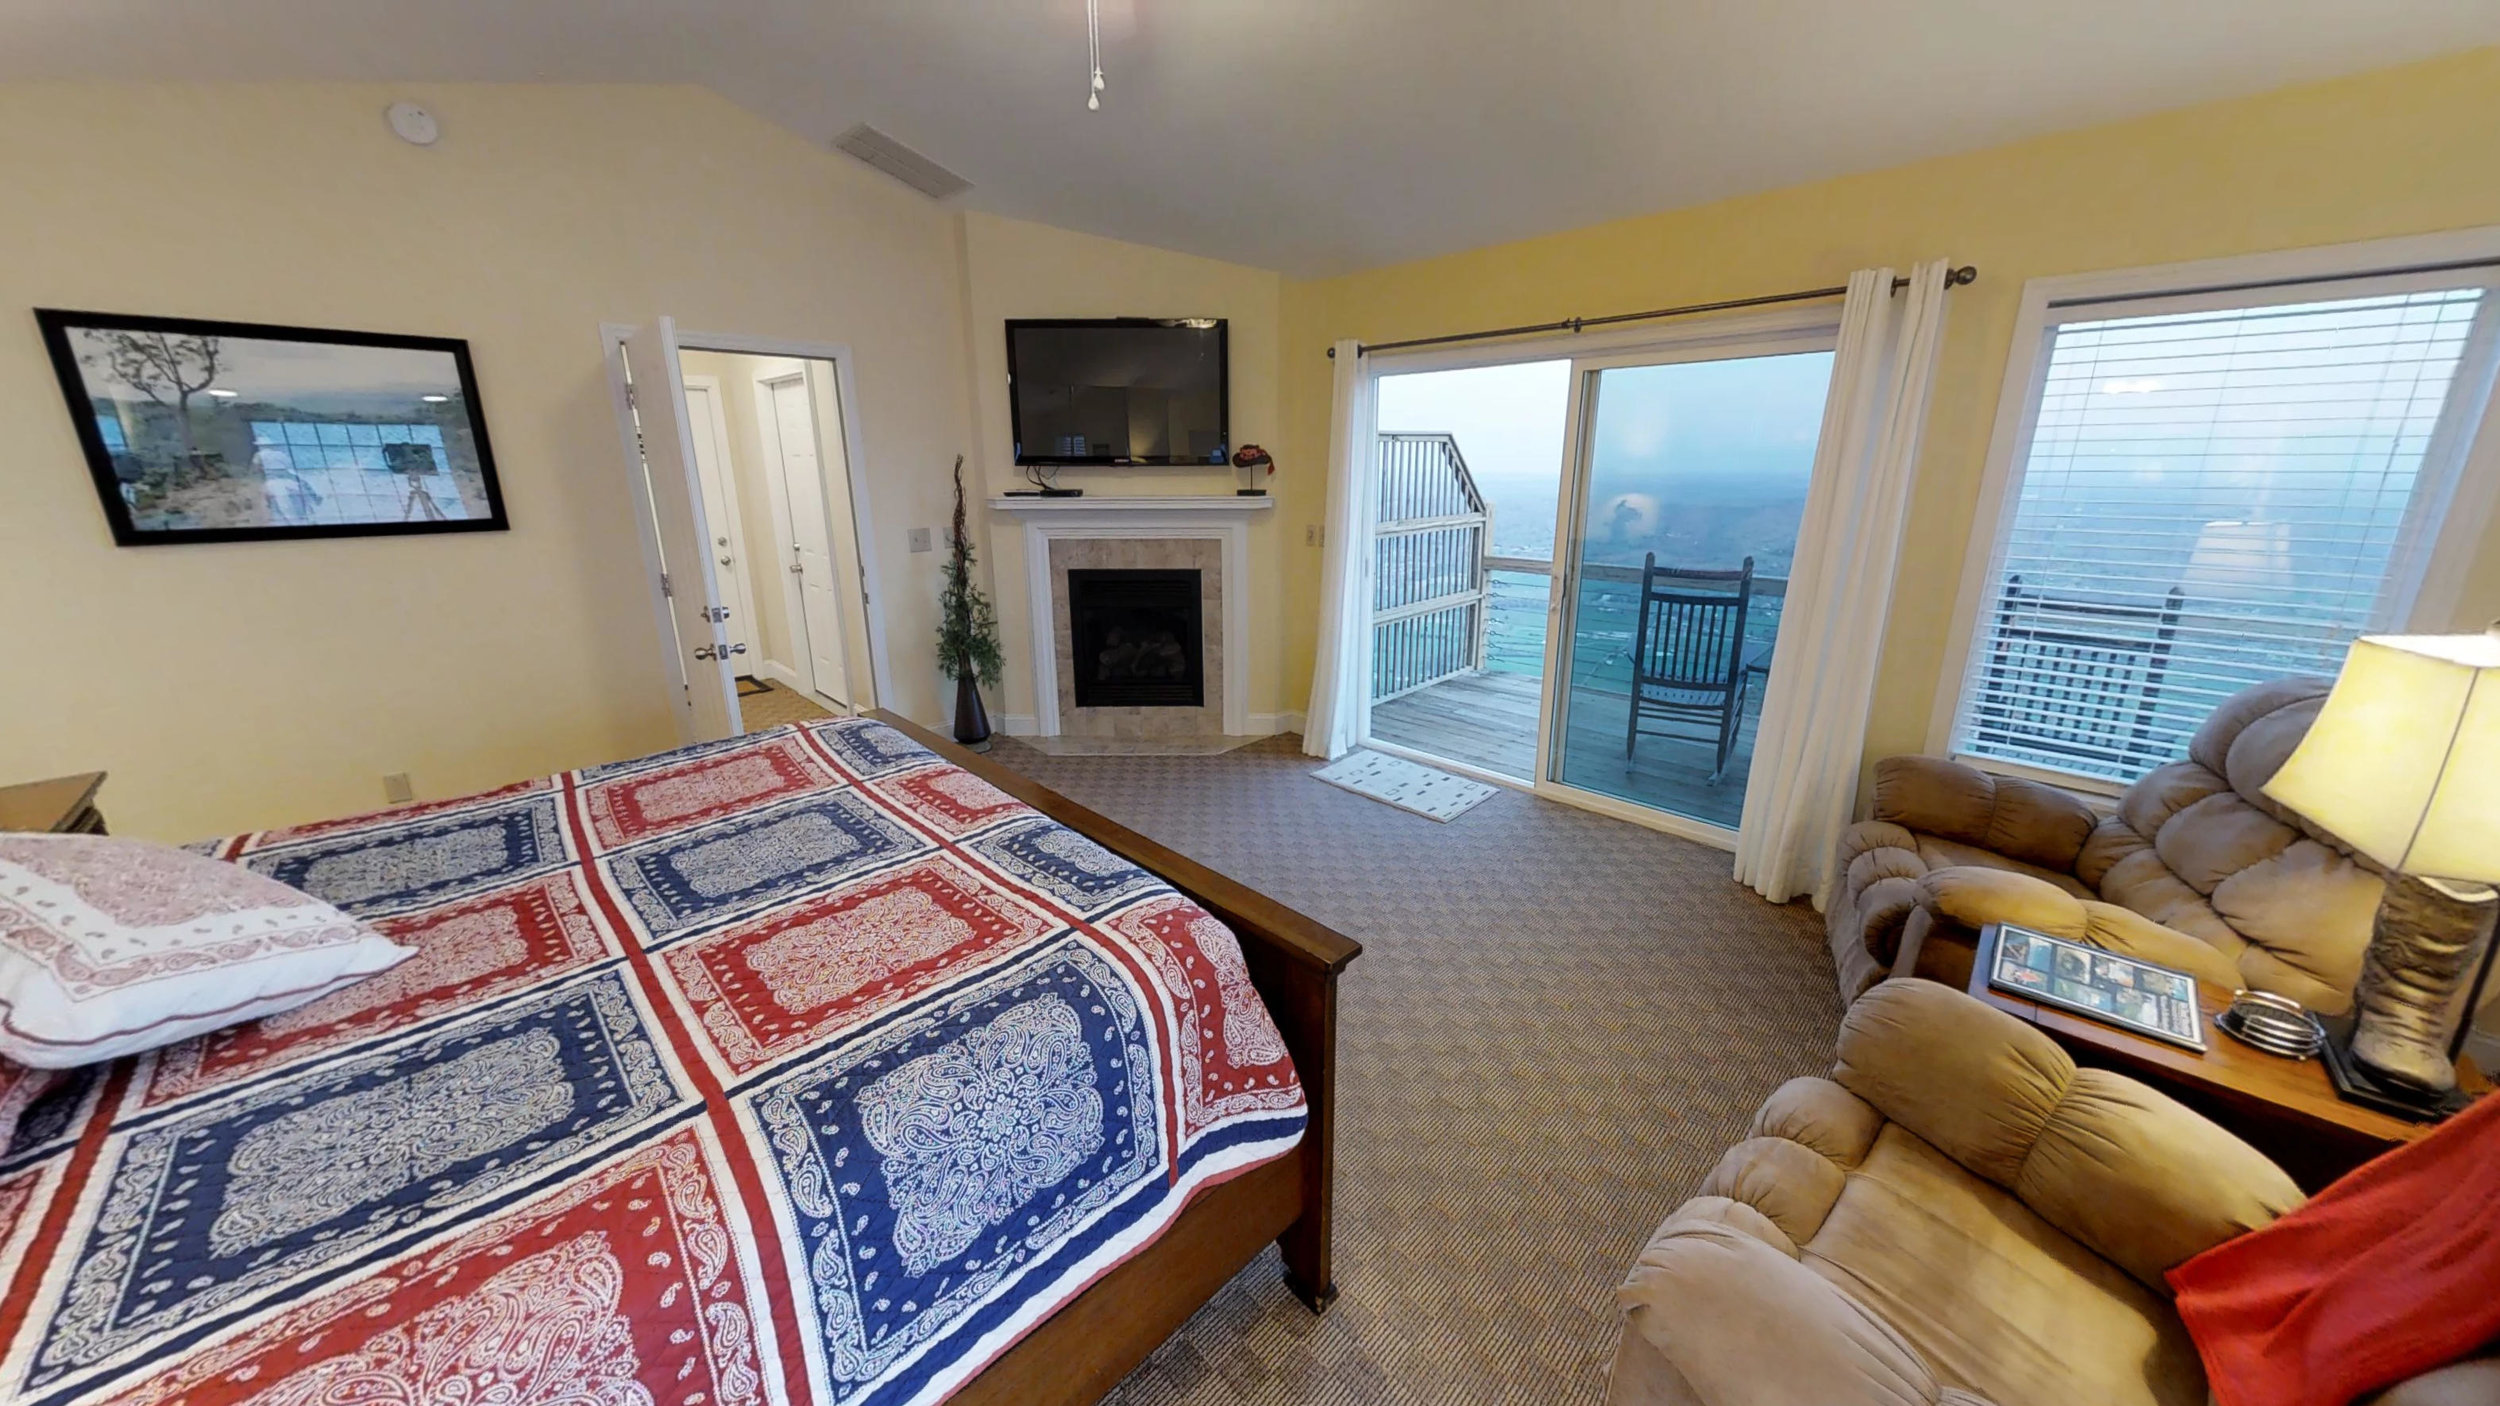 Cowboy - Penthouse suite, up 1 flight of stairs: $195 $195/night + tax based on 2 night min*Additional charge for holidays, peak weekends, and 1 night staysClick picture for virtual tour